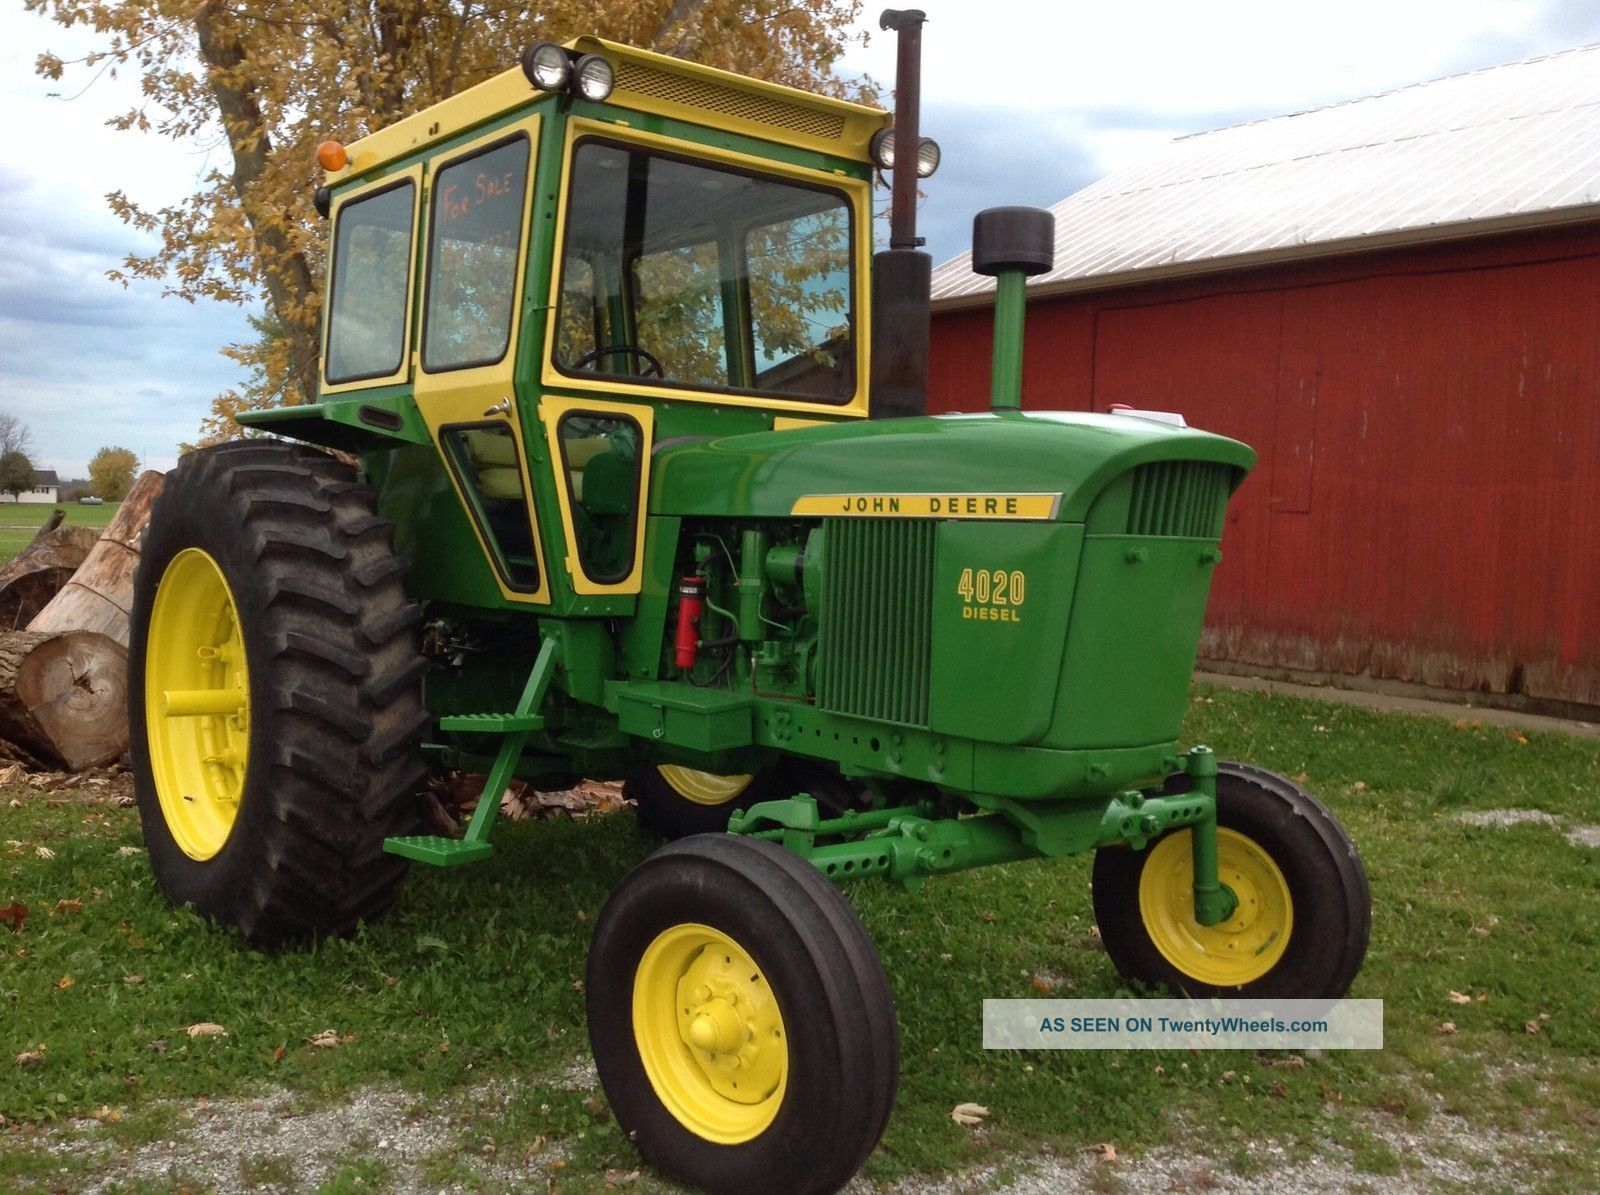 John Deere Tractor Shows : John deere tractor everything restored show ready